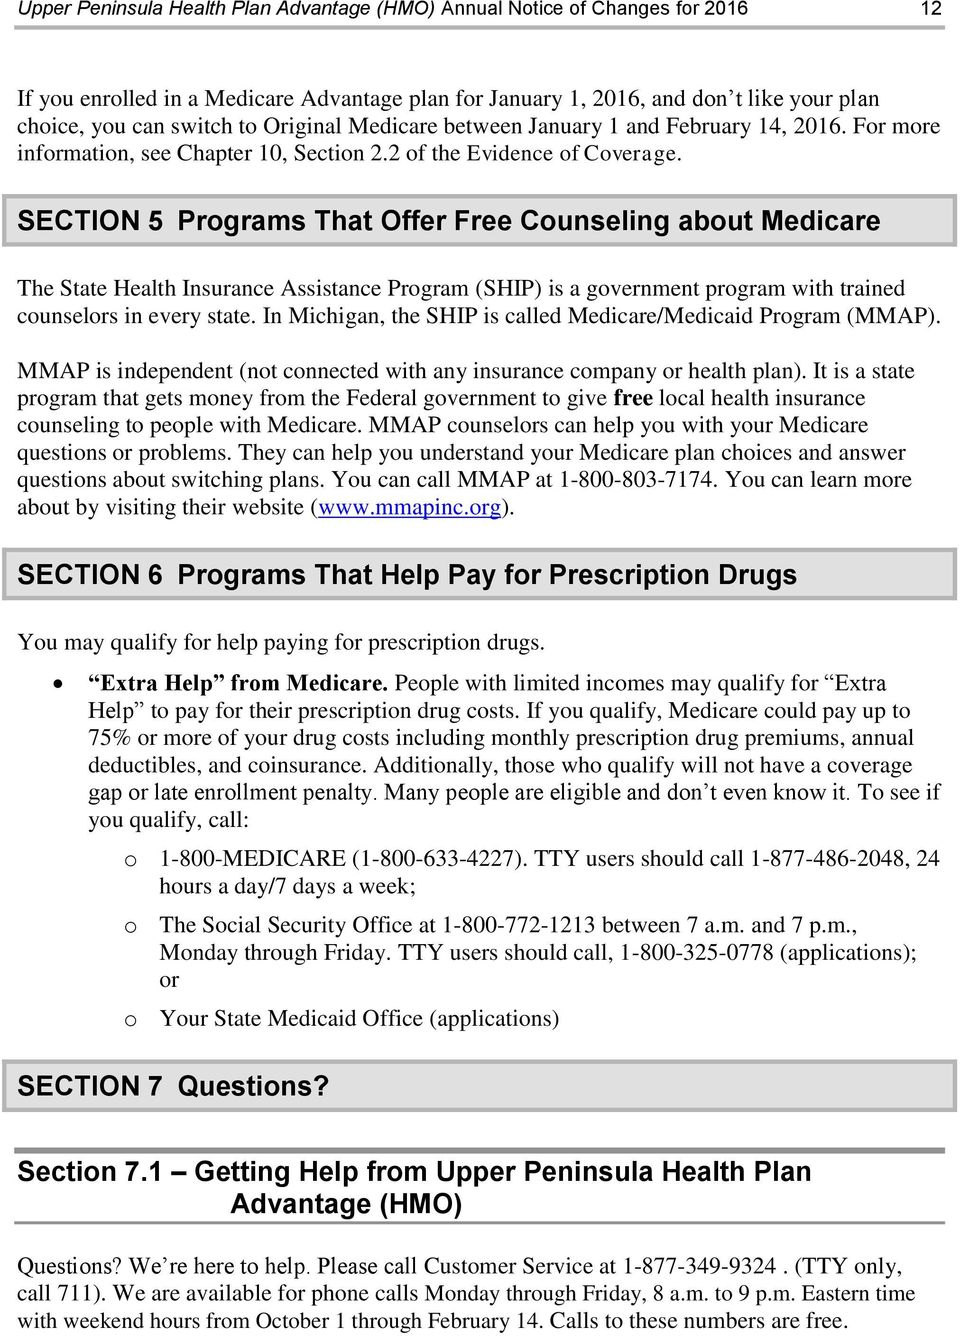 SECTION 5 Programs That Offer Free Counseling about Medicare The State Health Insurance Assistance Program (SHIP) is a government program with trained counselors in every state.